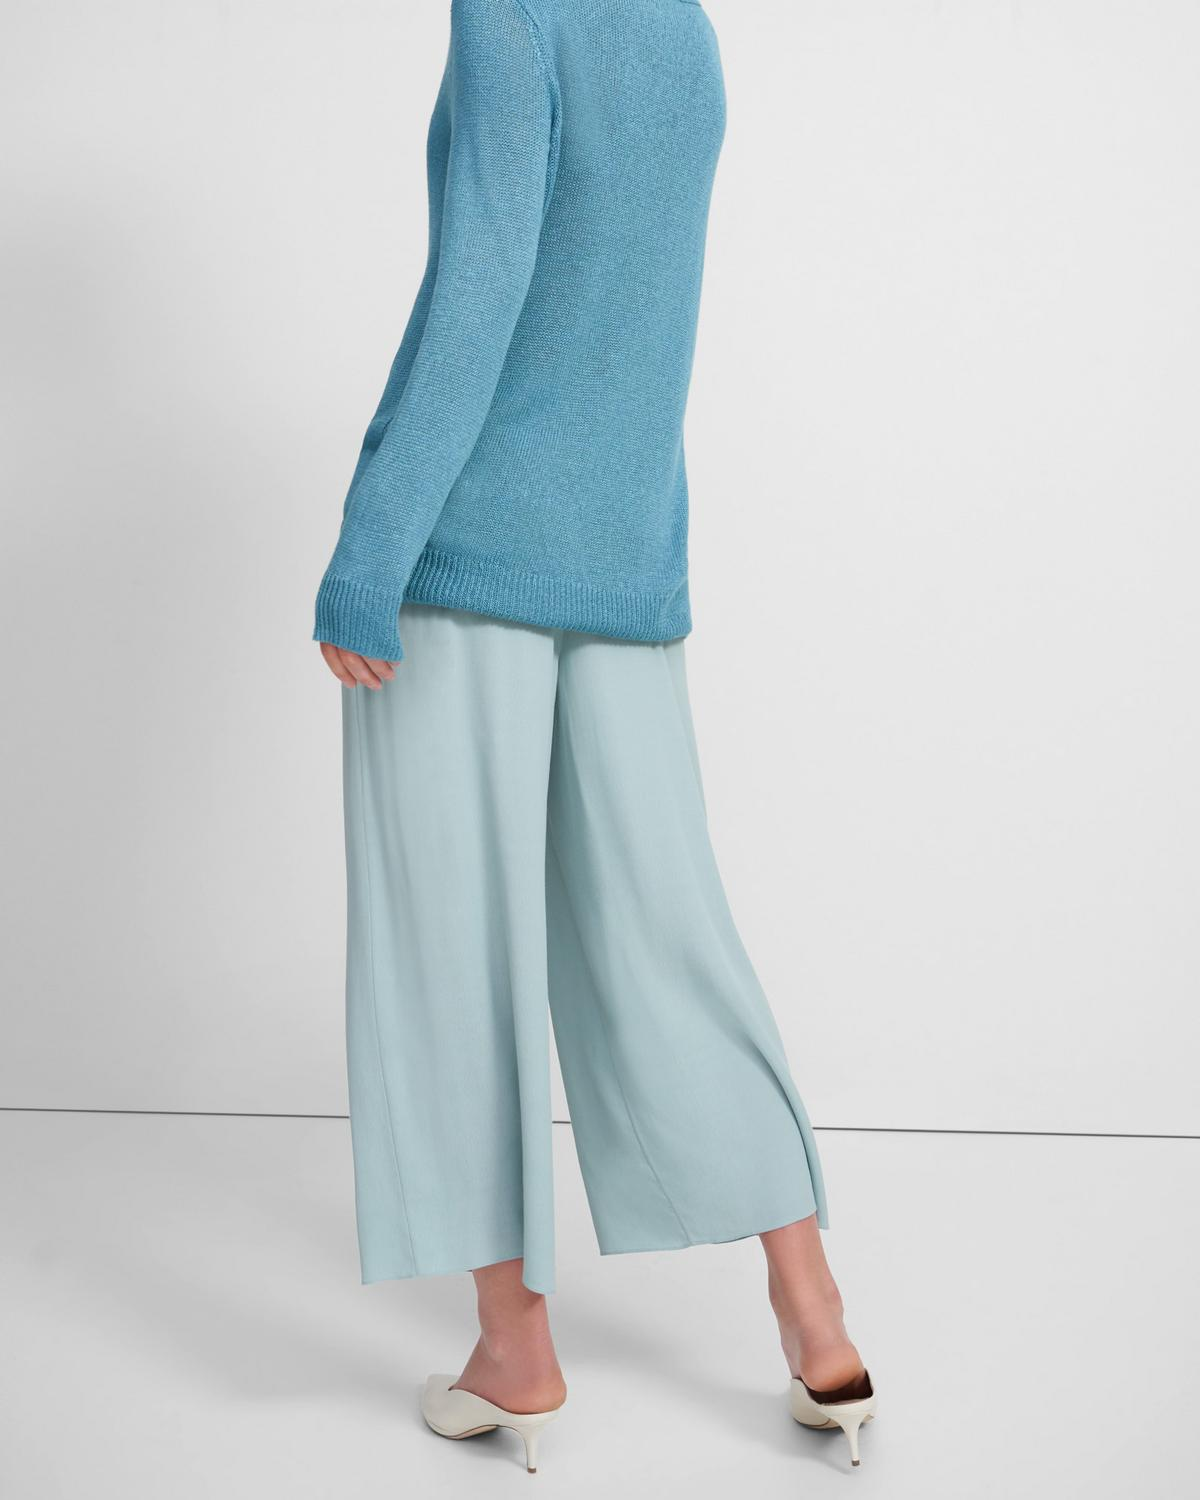 Ribbed Waist Cropped Pant in Viscose Crepe